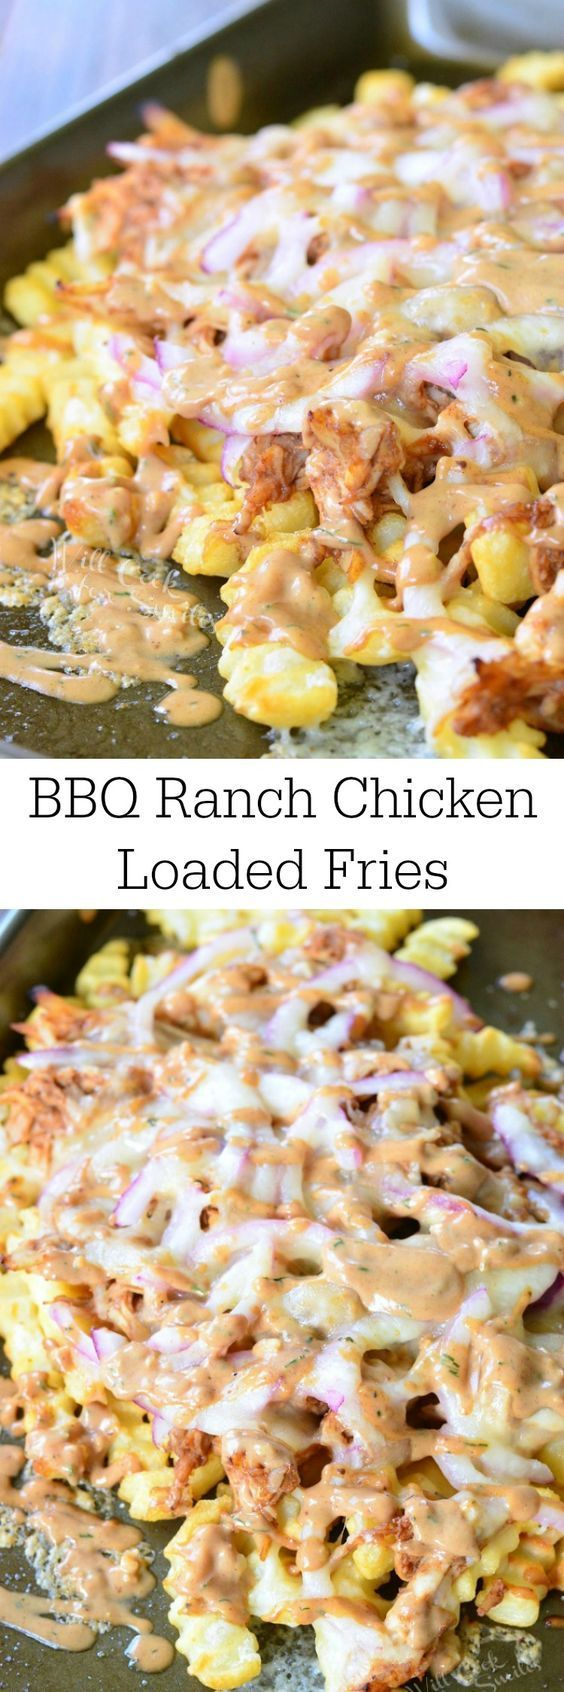 BBQ Ranch Chicken Loaded Fries ~ SIMPLE and DELICIOUS, loaded fries with shredded rotisserie chicken, gooey cheese, red onion, BBQ sauce, and topped with BBQ ranch dressing!